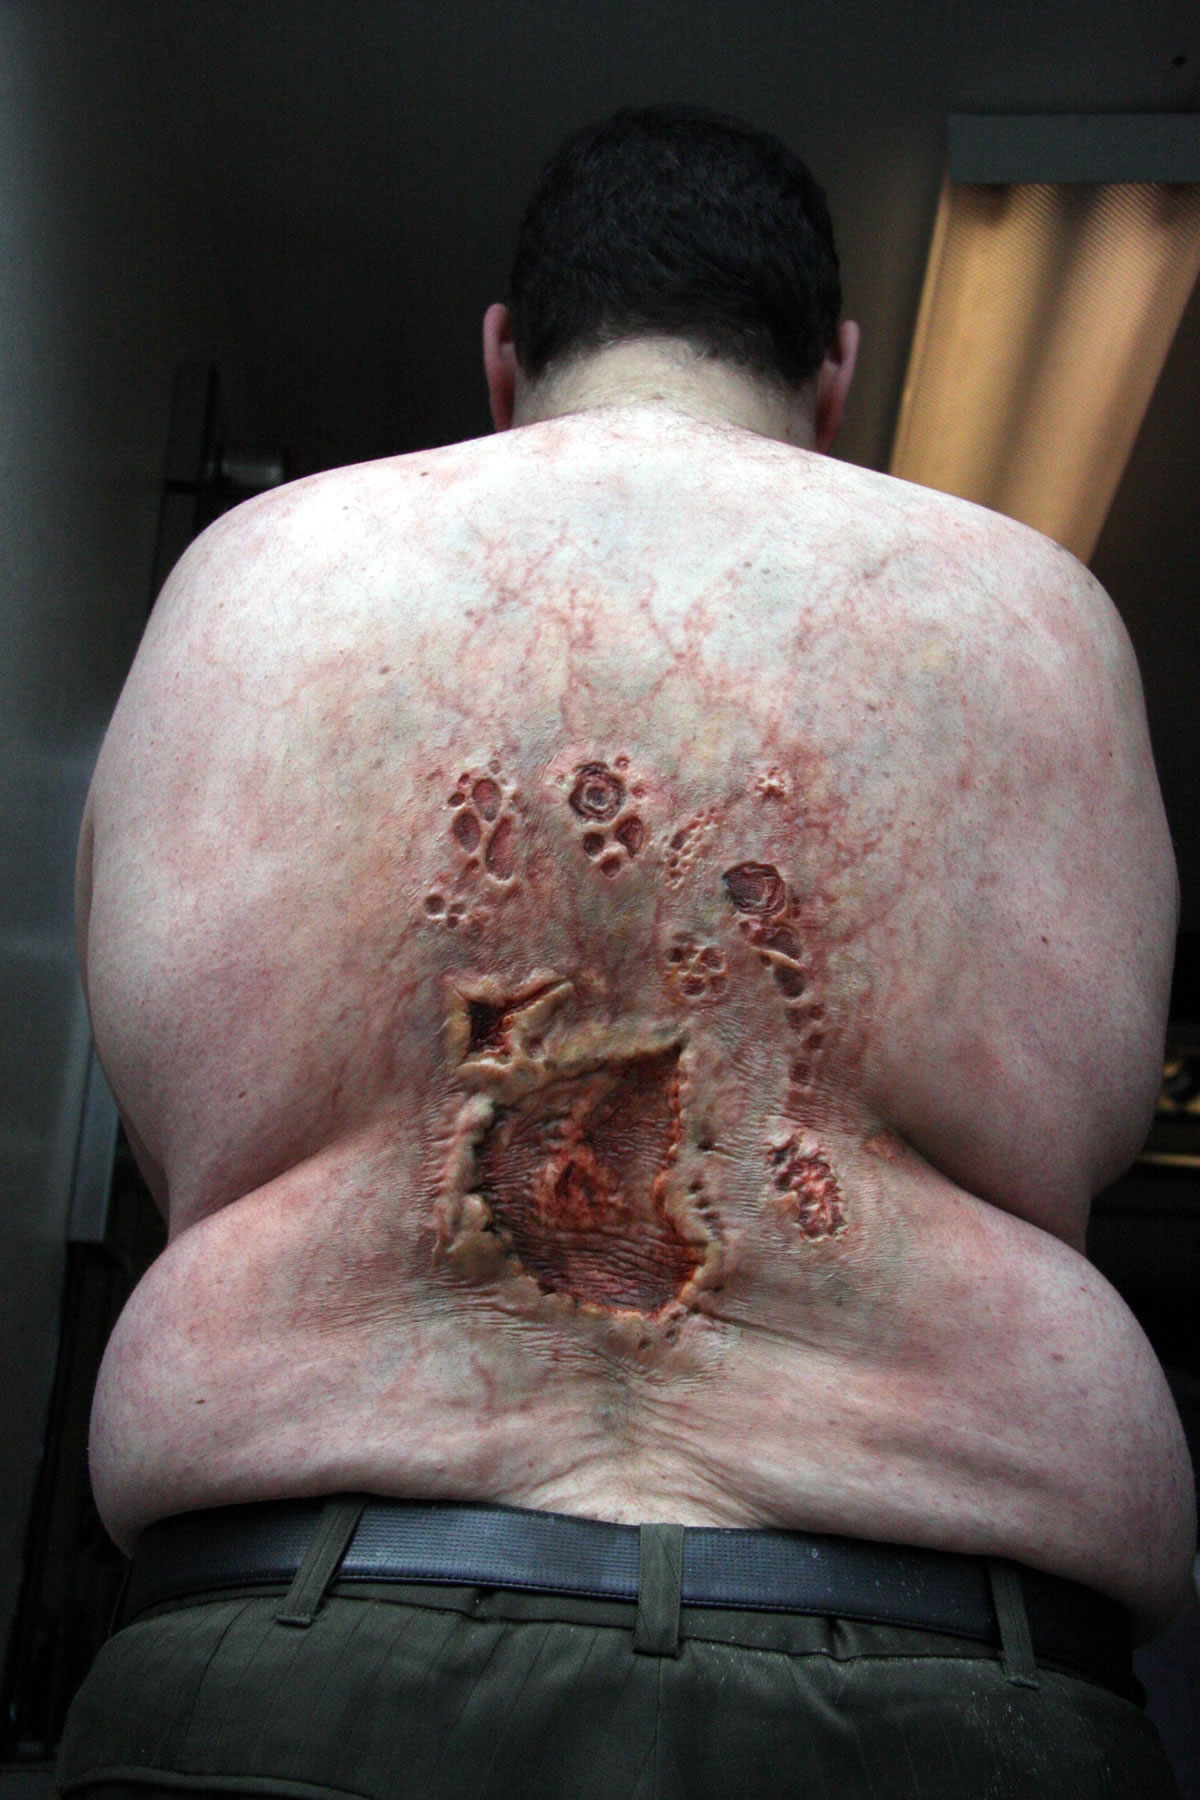 Extreme infected bedsores for the series '1000 Ways to Die'